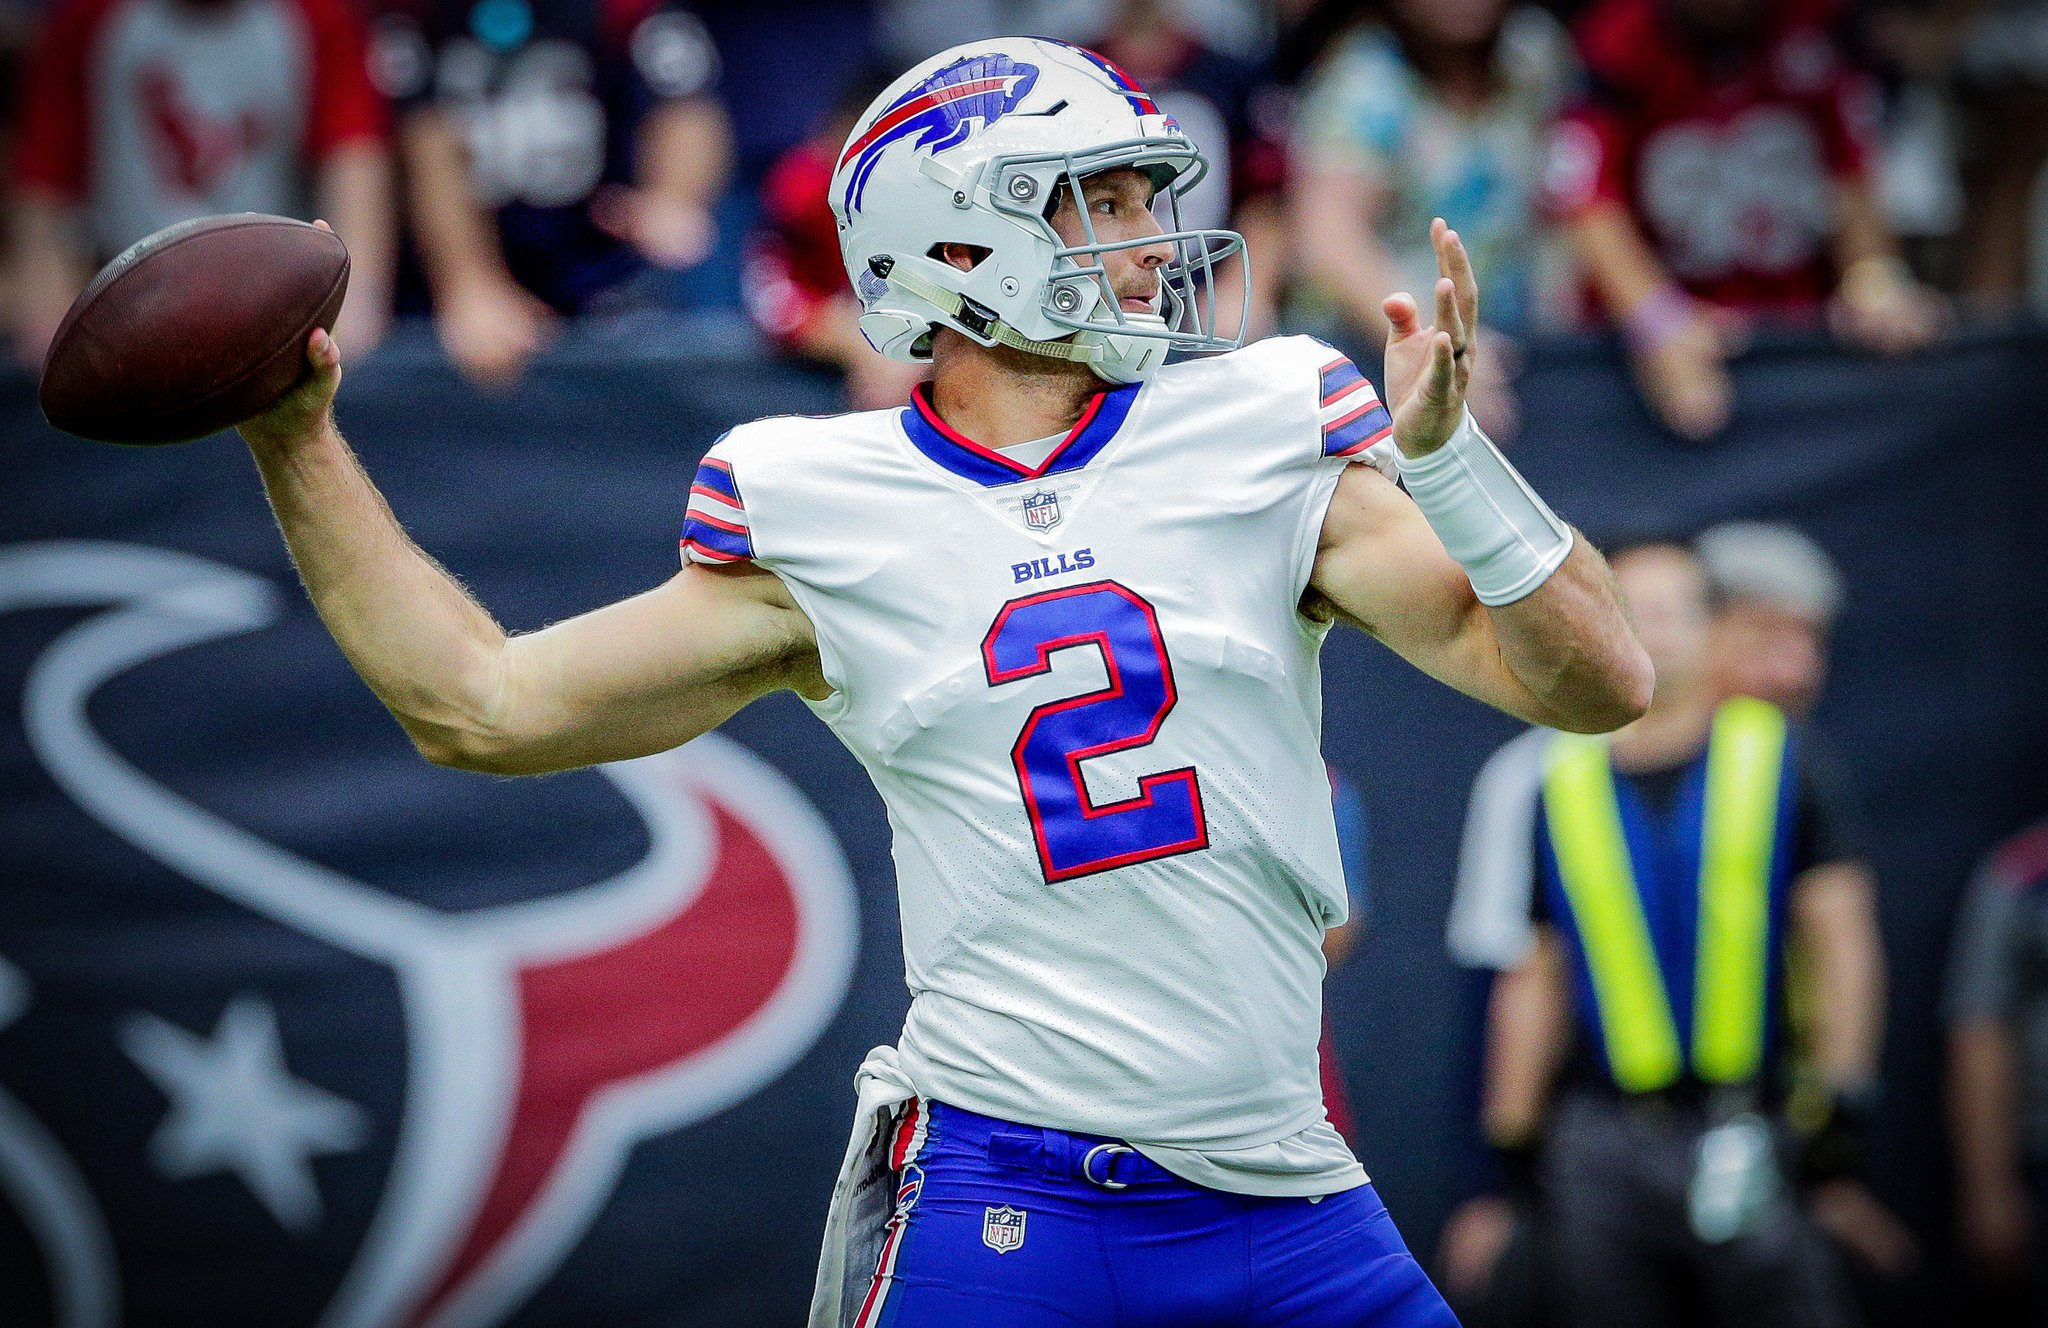 We have released QB Nathan Peterman. https://t.co/1DtMKfvZ0M